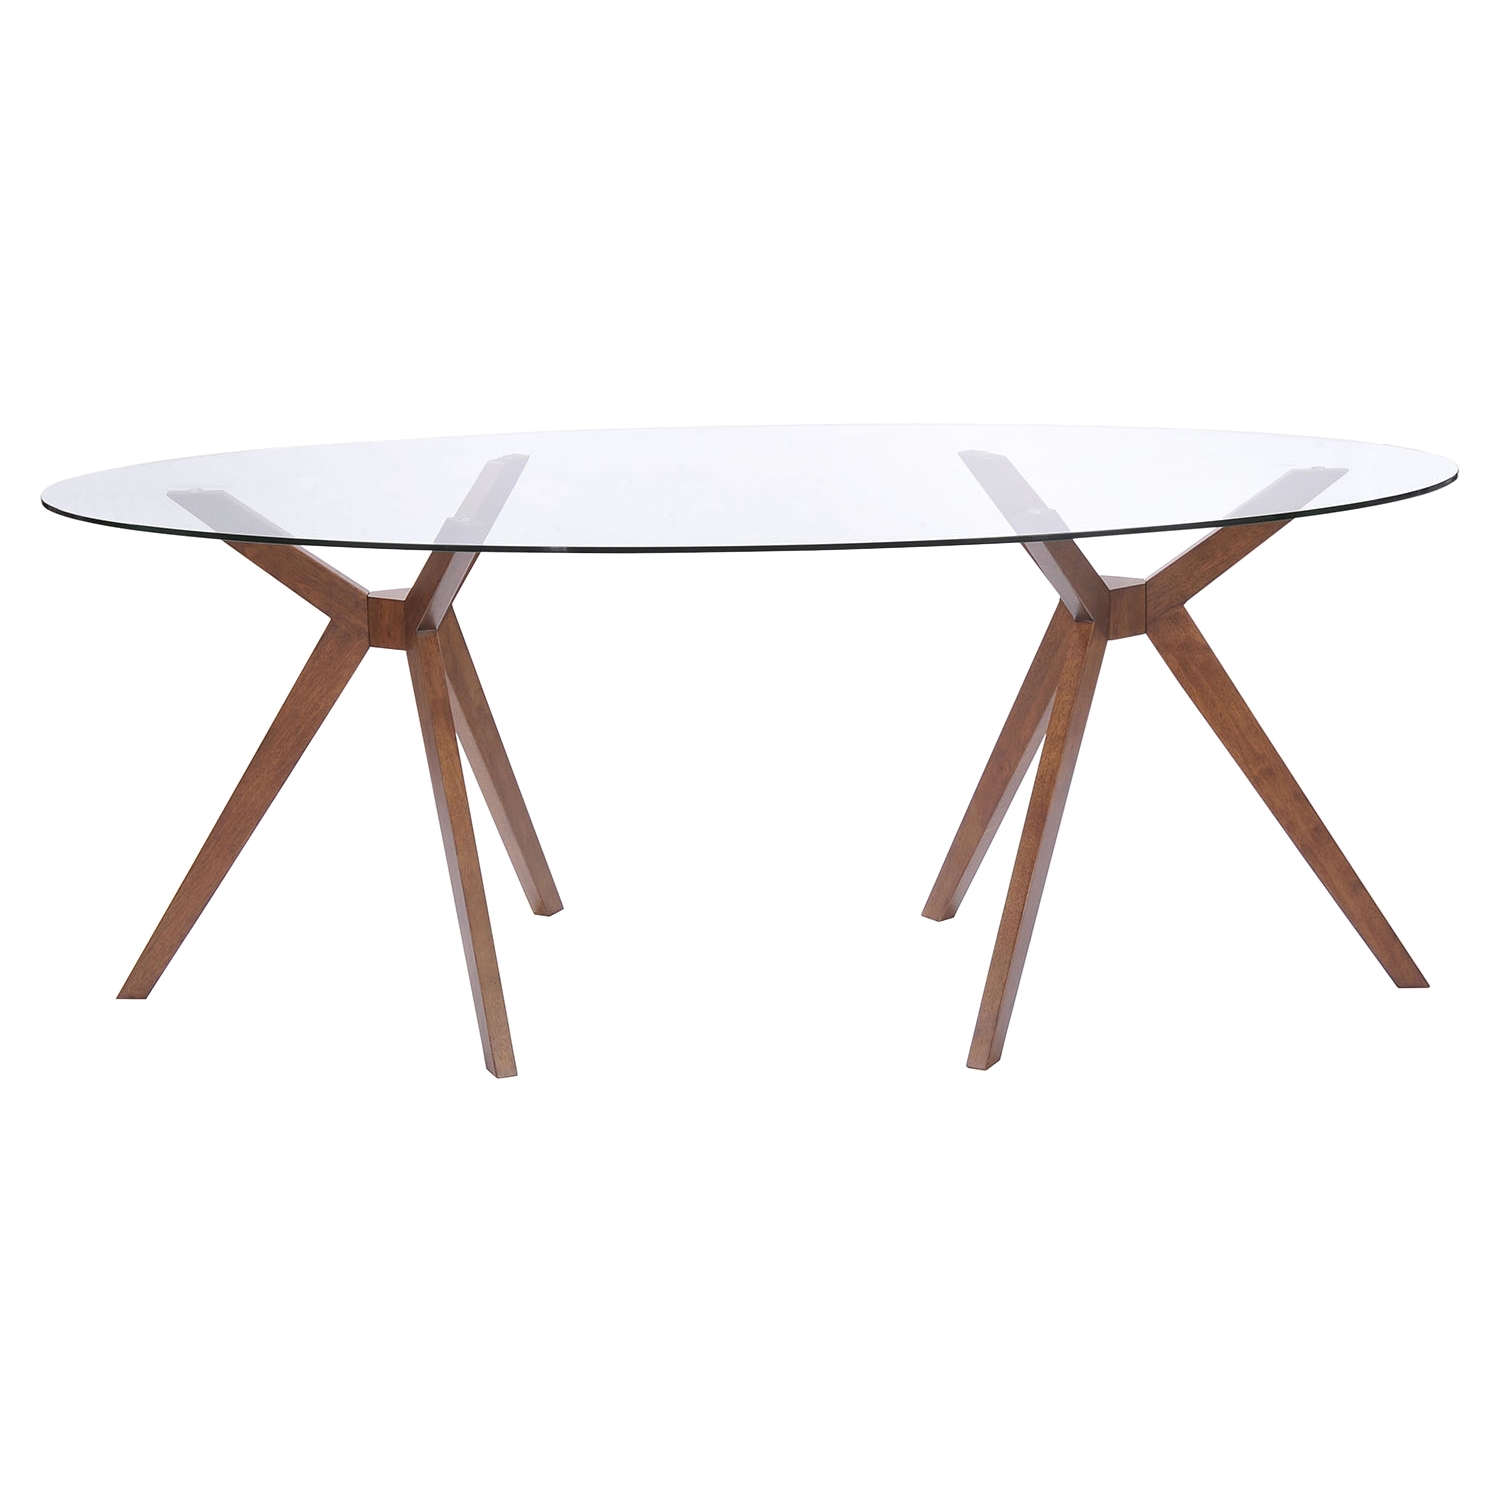 Buena Vista Walnut Dining Table - ZM-100090